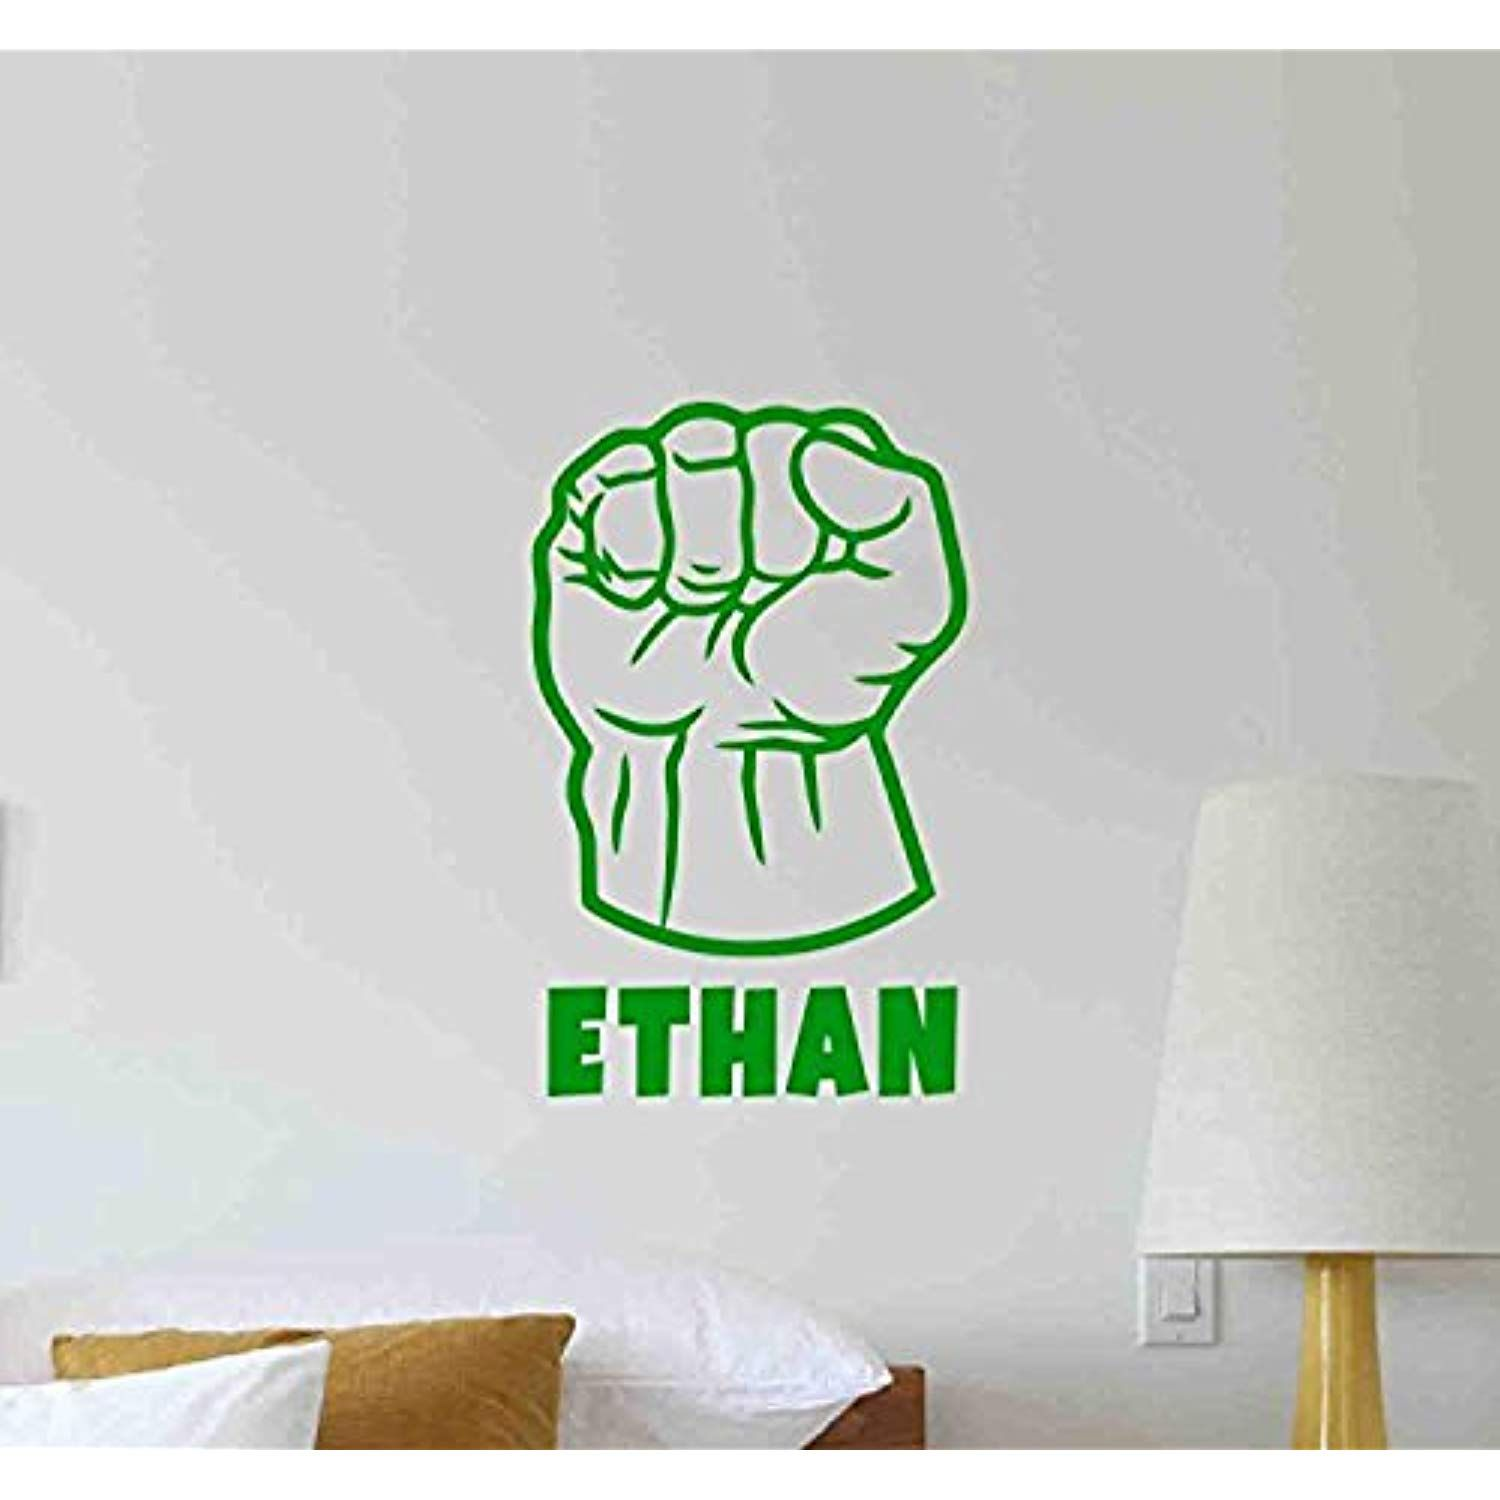 Atopdecals personalized hulk fist wall decal superhero marvel comic book avengers vinyl sticker living room decorations housewares home bedroom nursery